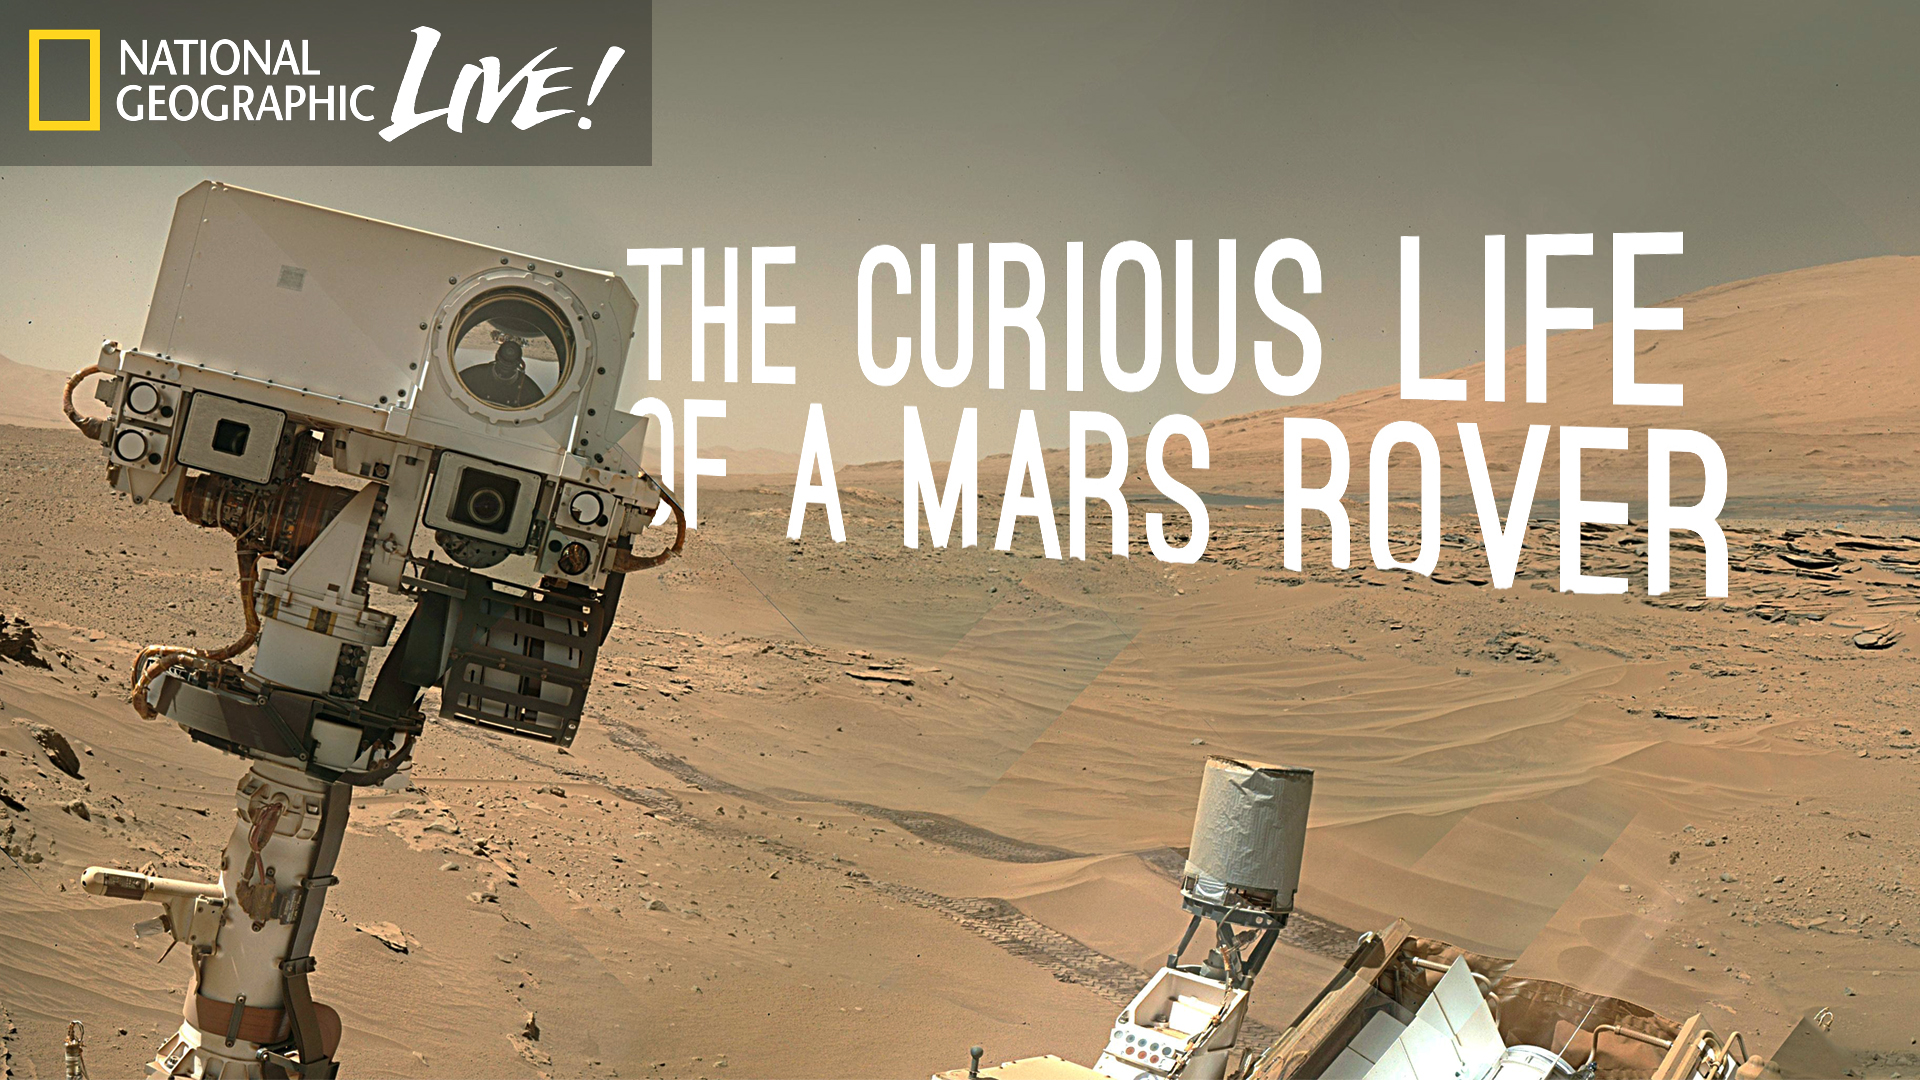 mars rover national geographic - photo #25